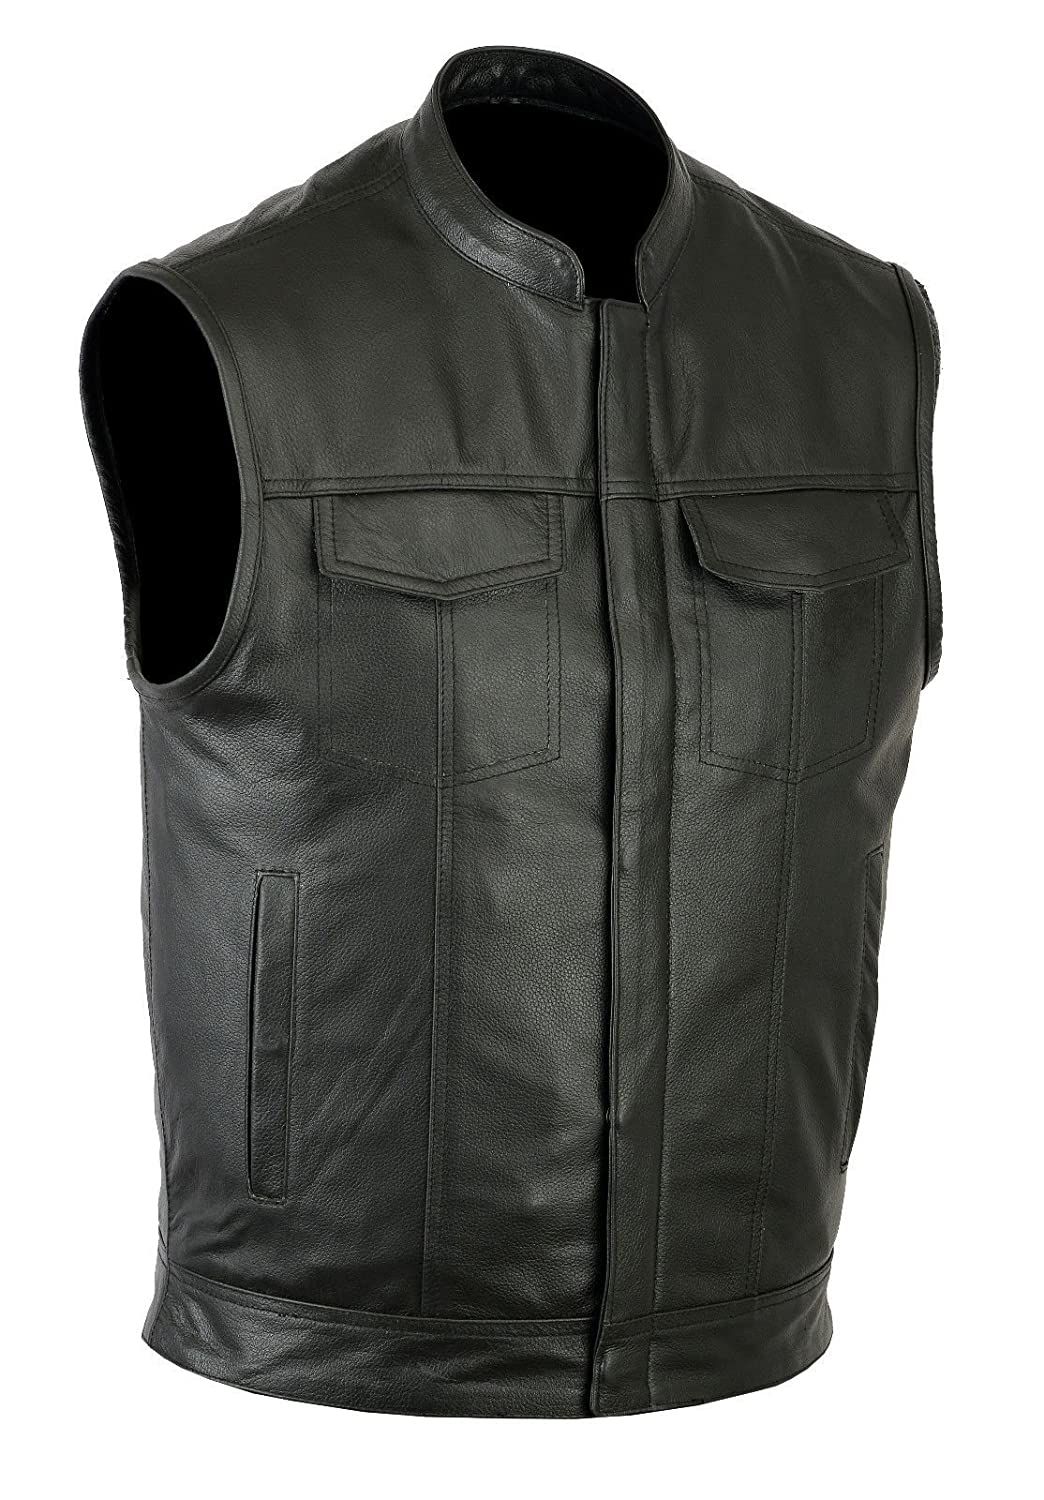 Ruja SOA Sons of Anarchy Style Genuine Leather Vest, Concealed Carry